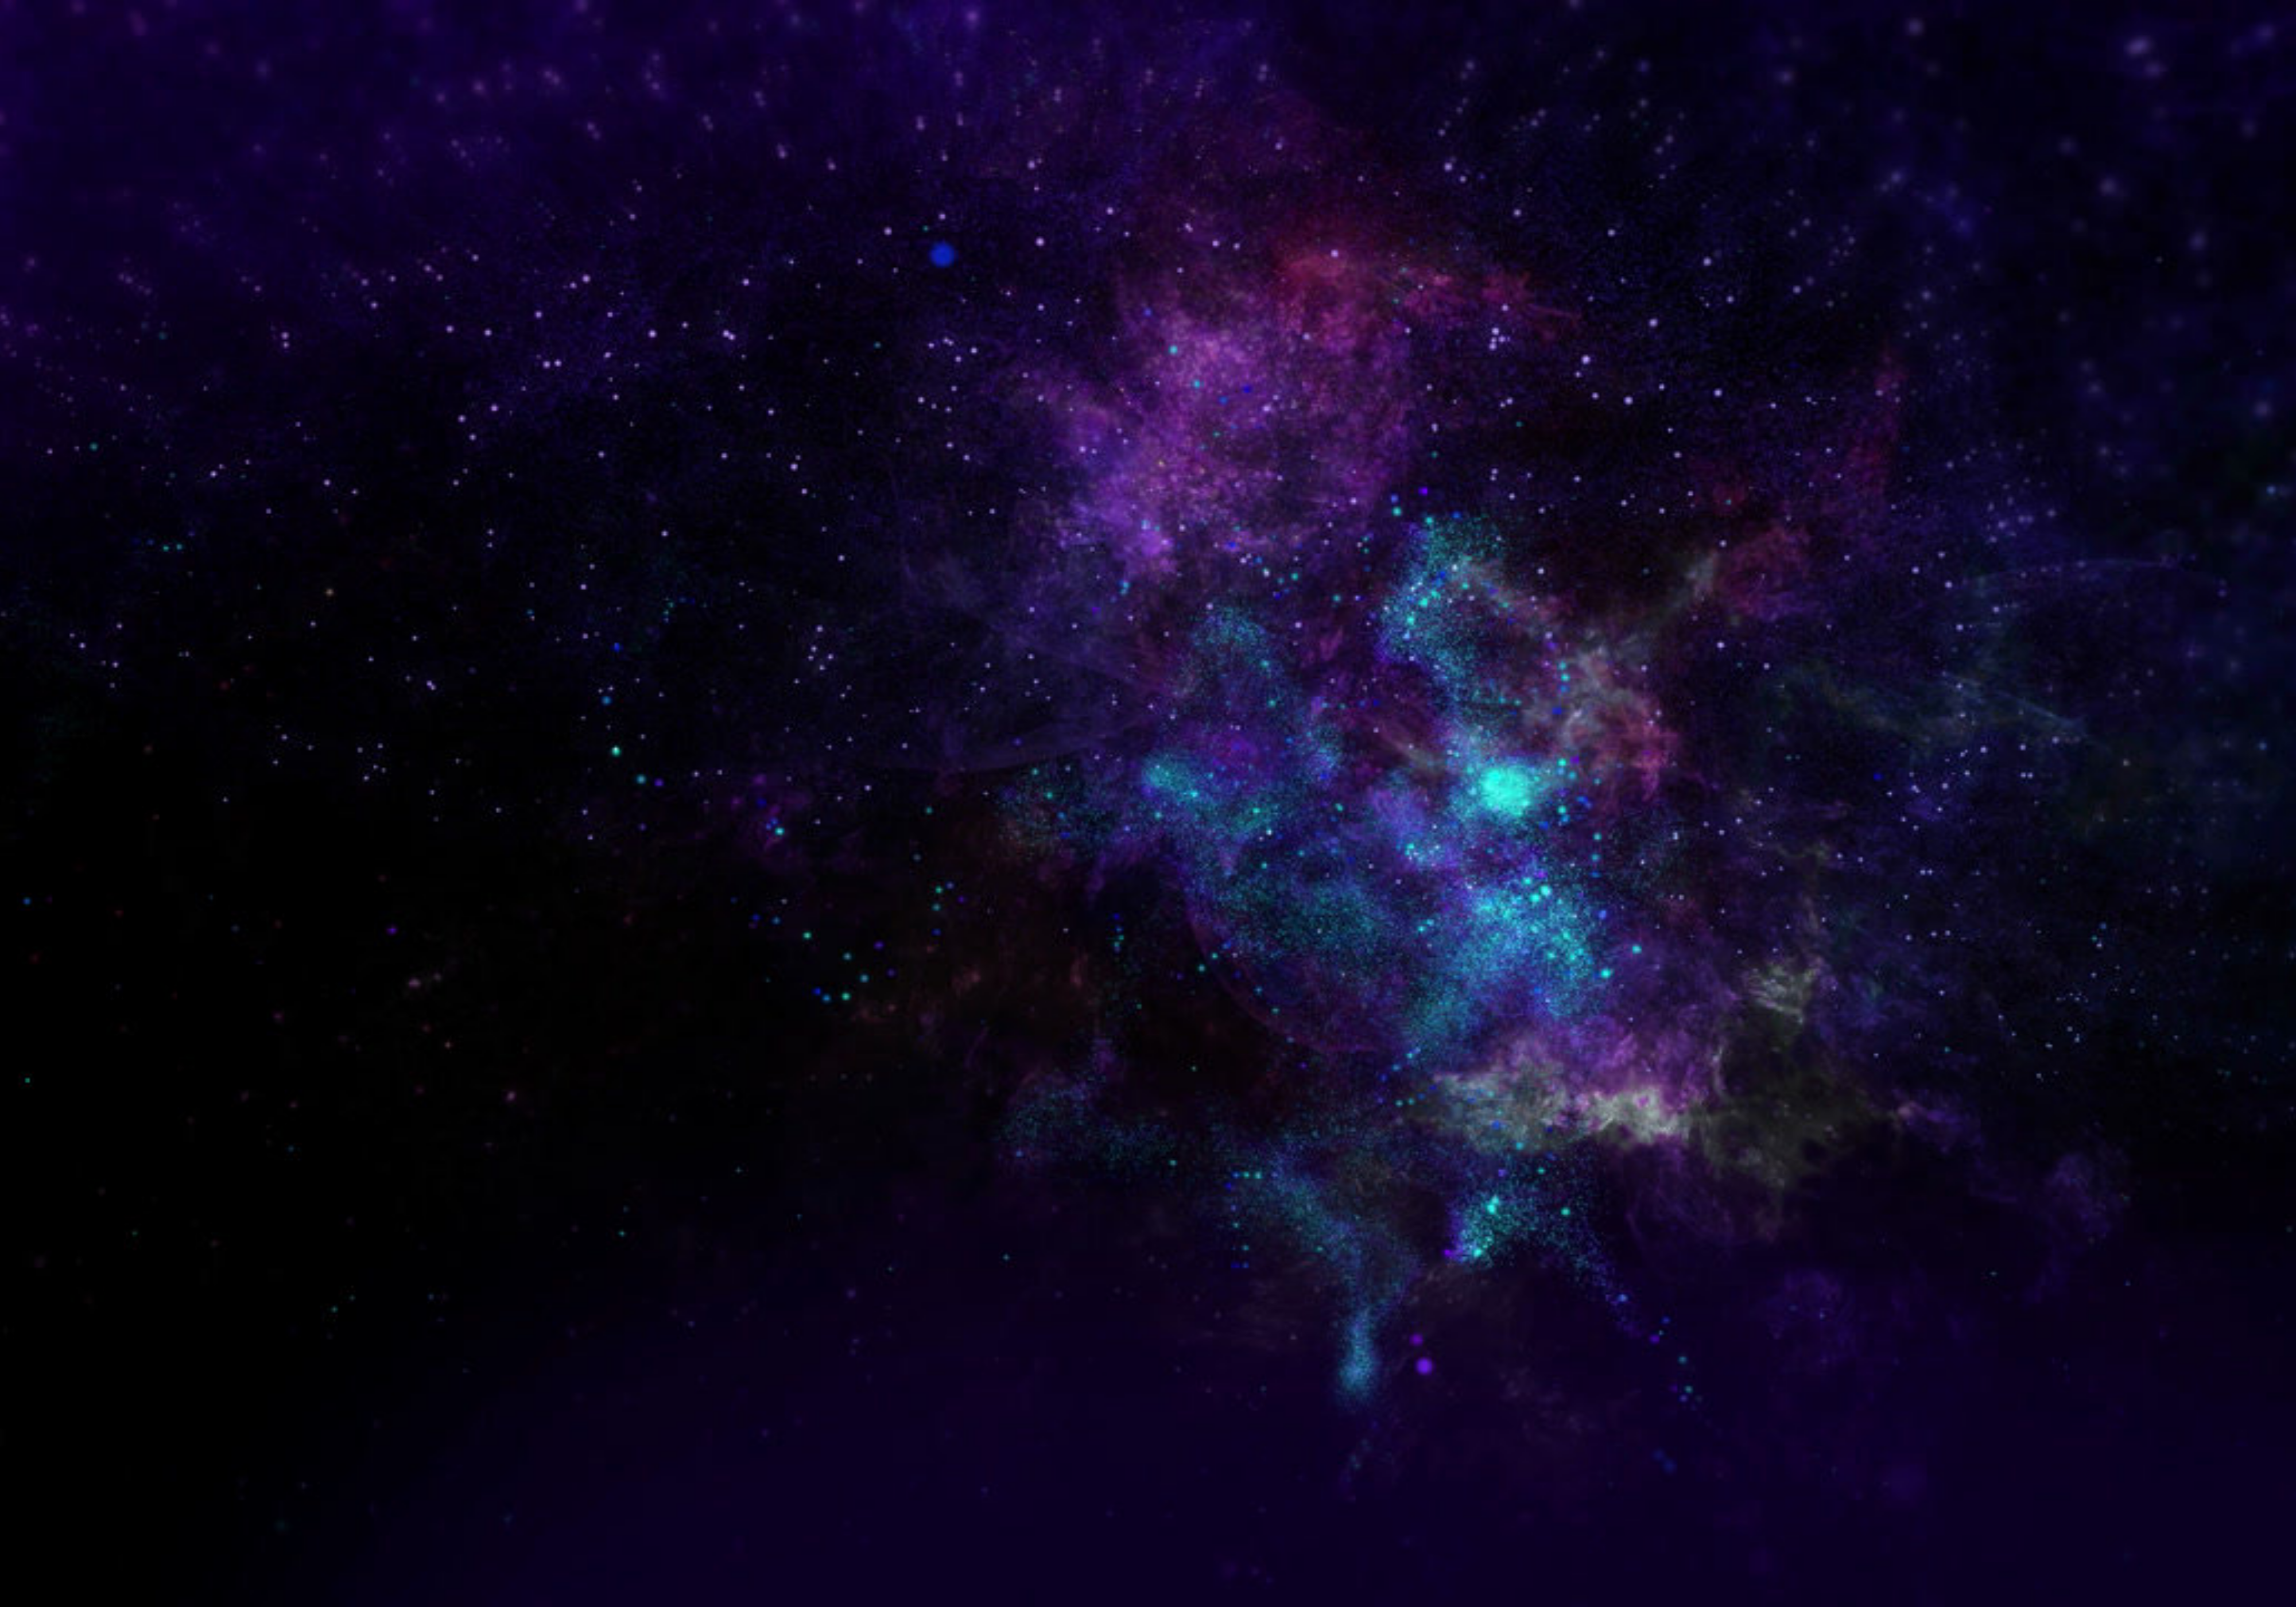 dark simulated picture of the universe with black, dark blues and purples